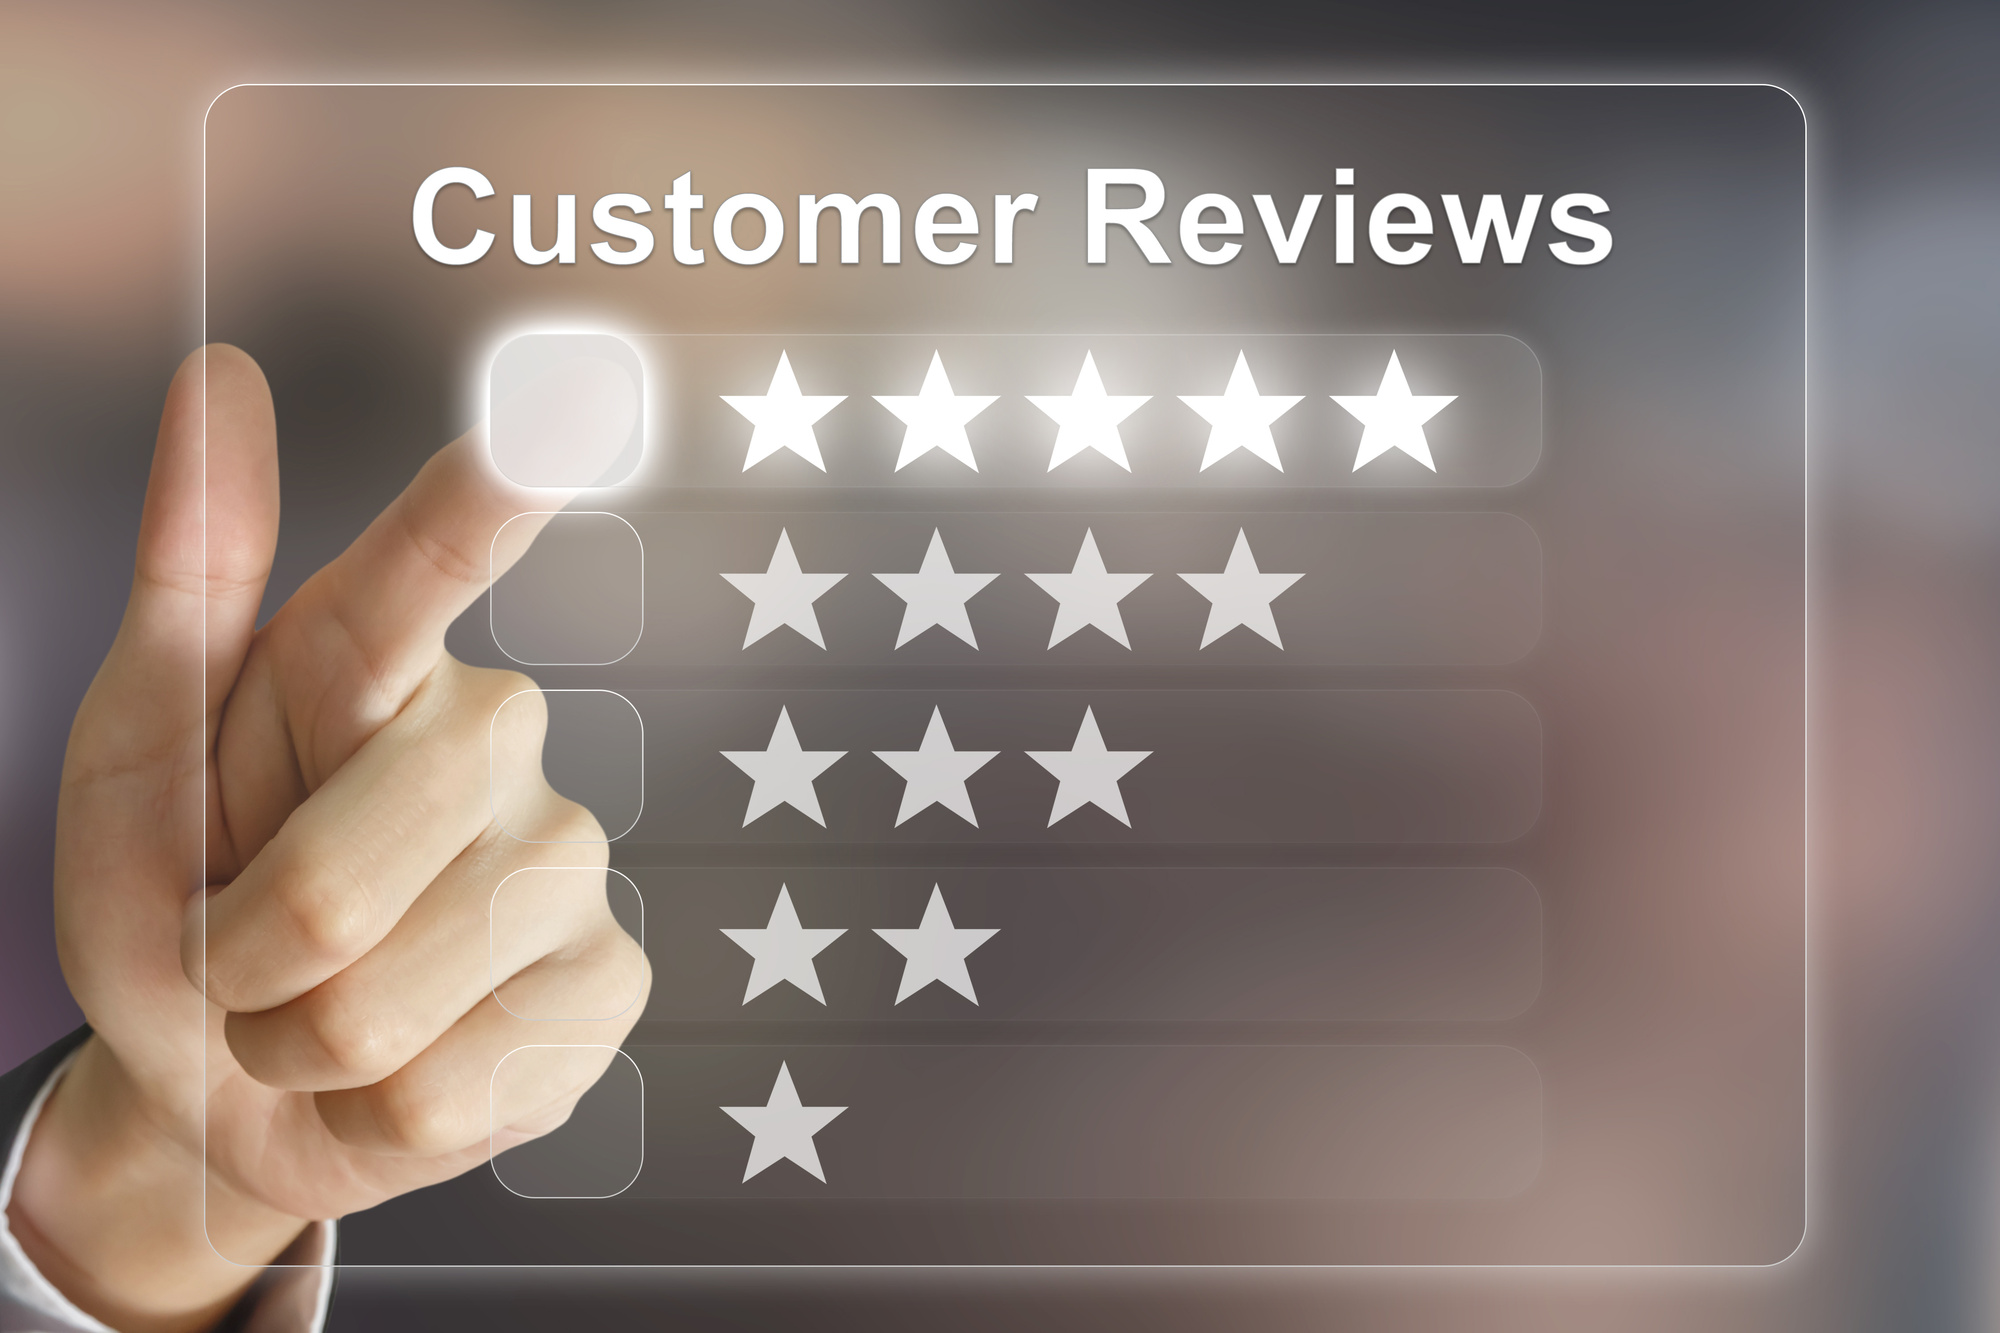 5 Steps to Increased Customer Service Reviews